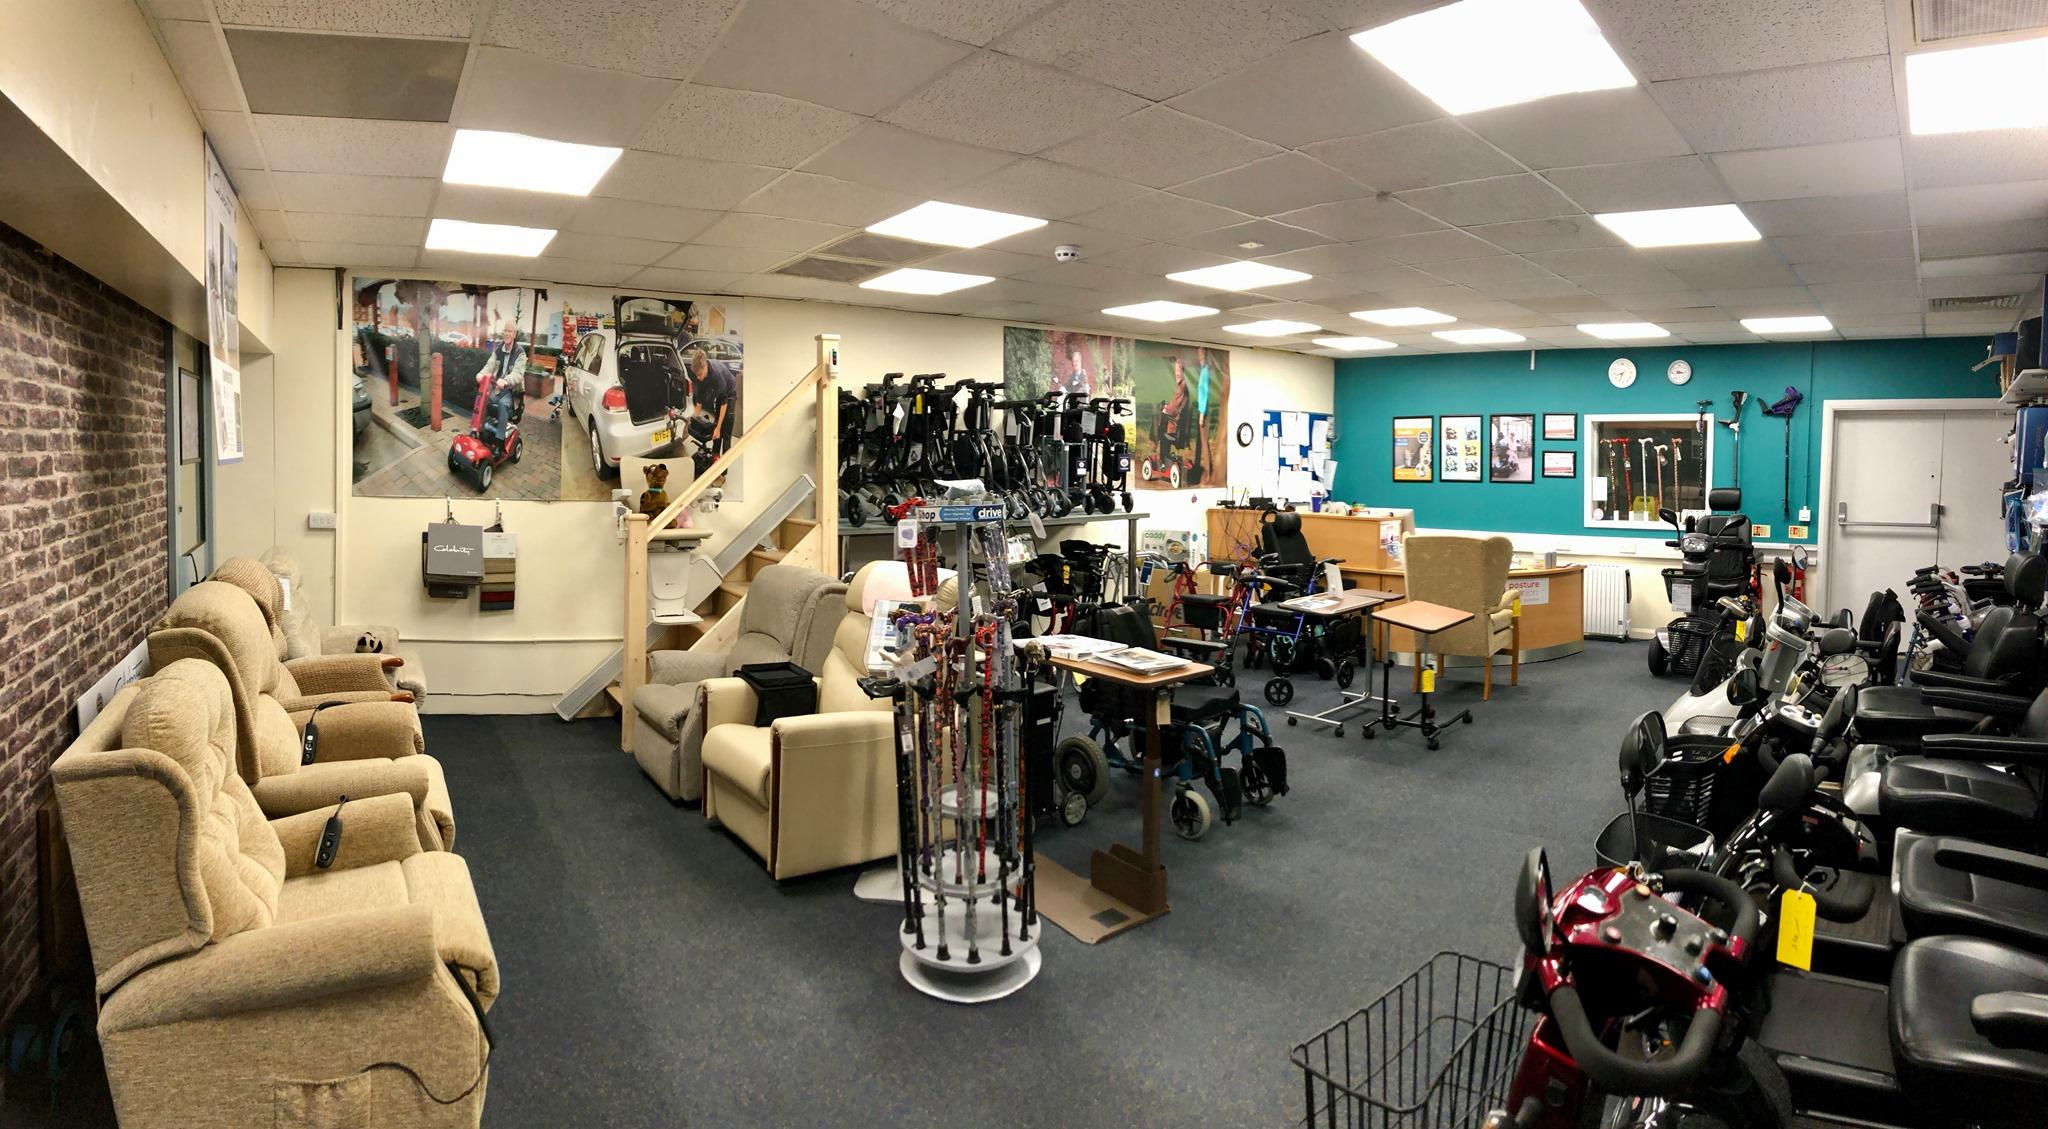 Mobility Shop. Mobility Scooters, Walking Sticks, Rise Recline Chairs, Wheelchairs and Rollators